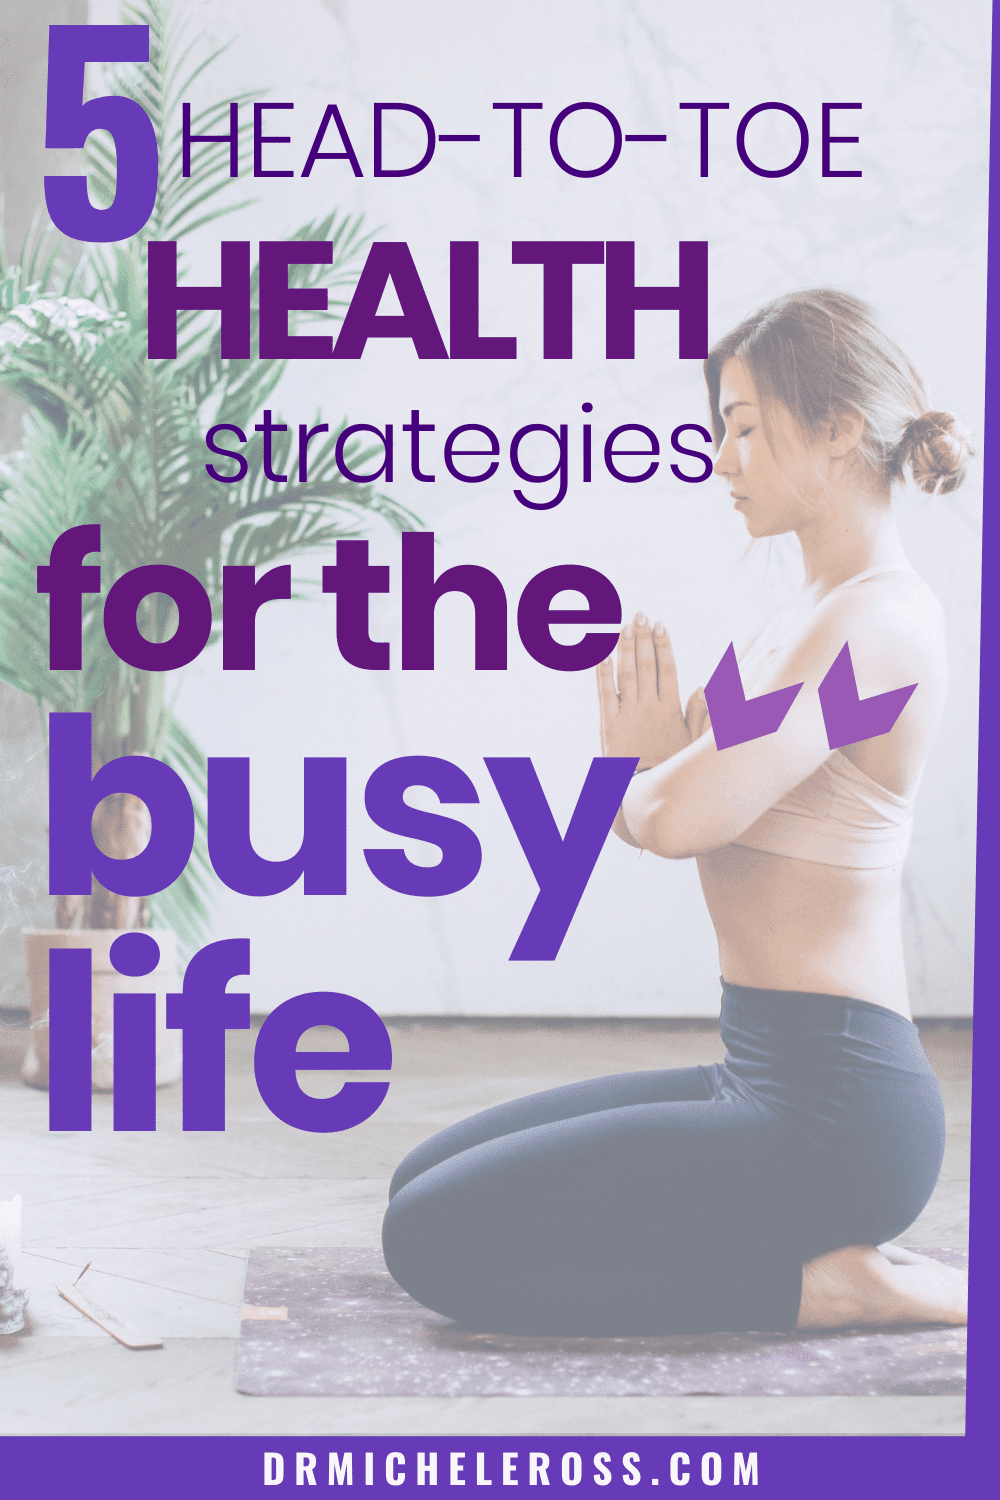 Practical and Affordable Head-To-Toe Health Strategies for the Busy Life